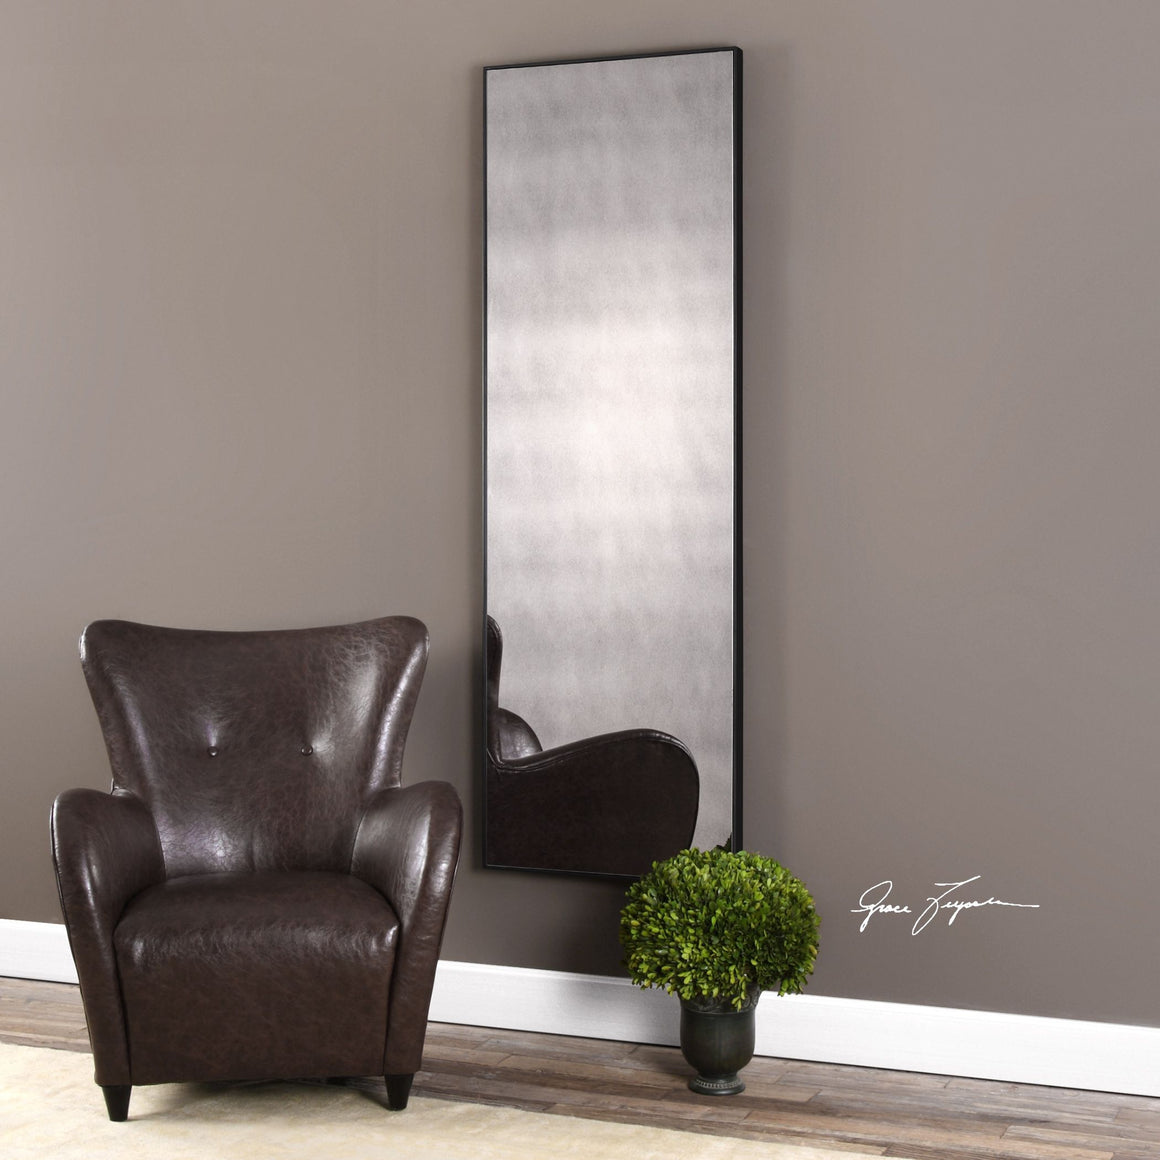 Burwell Oversized Antiqued Mirror - taylor ray decor